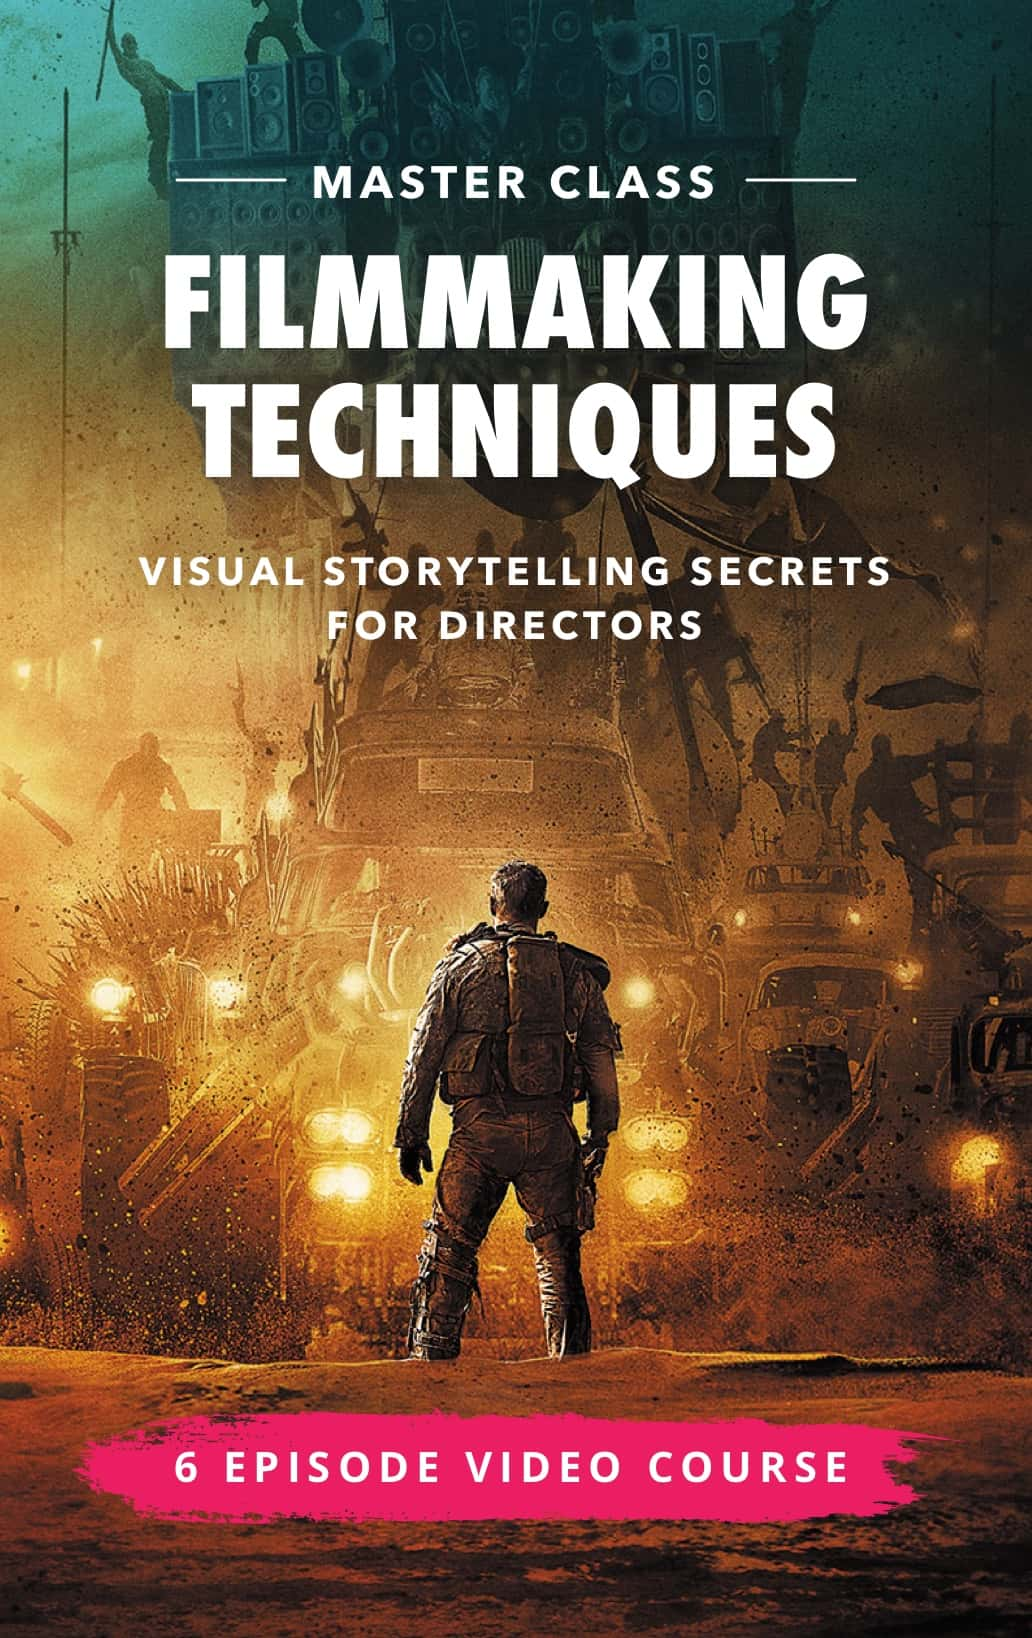 Directing E-Course - Filmmaking Techniques Master Class for Directors - Visual Storytelling - StudioBinder